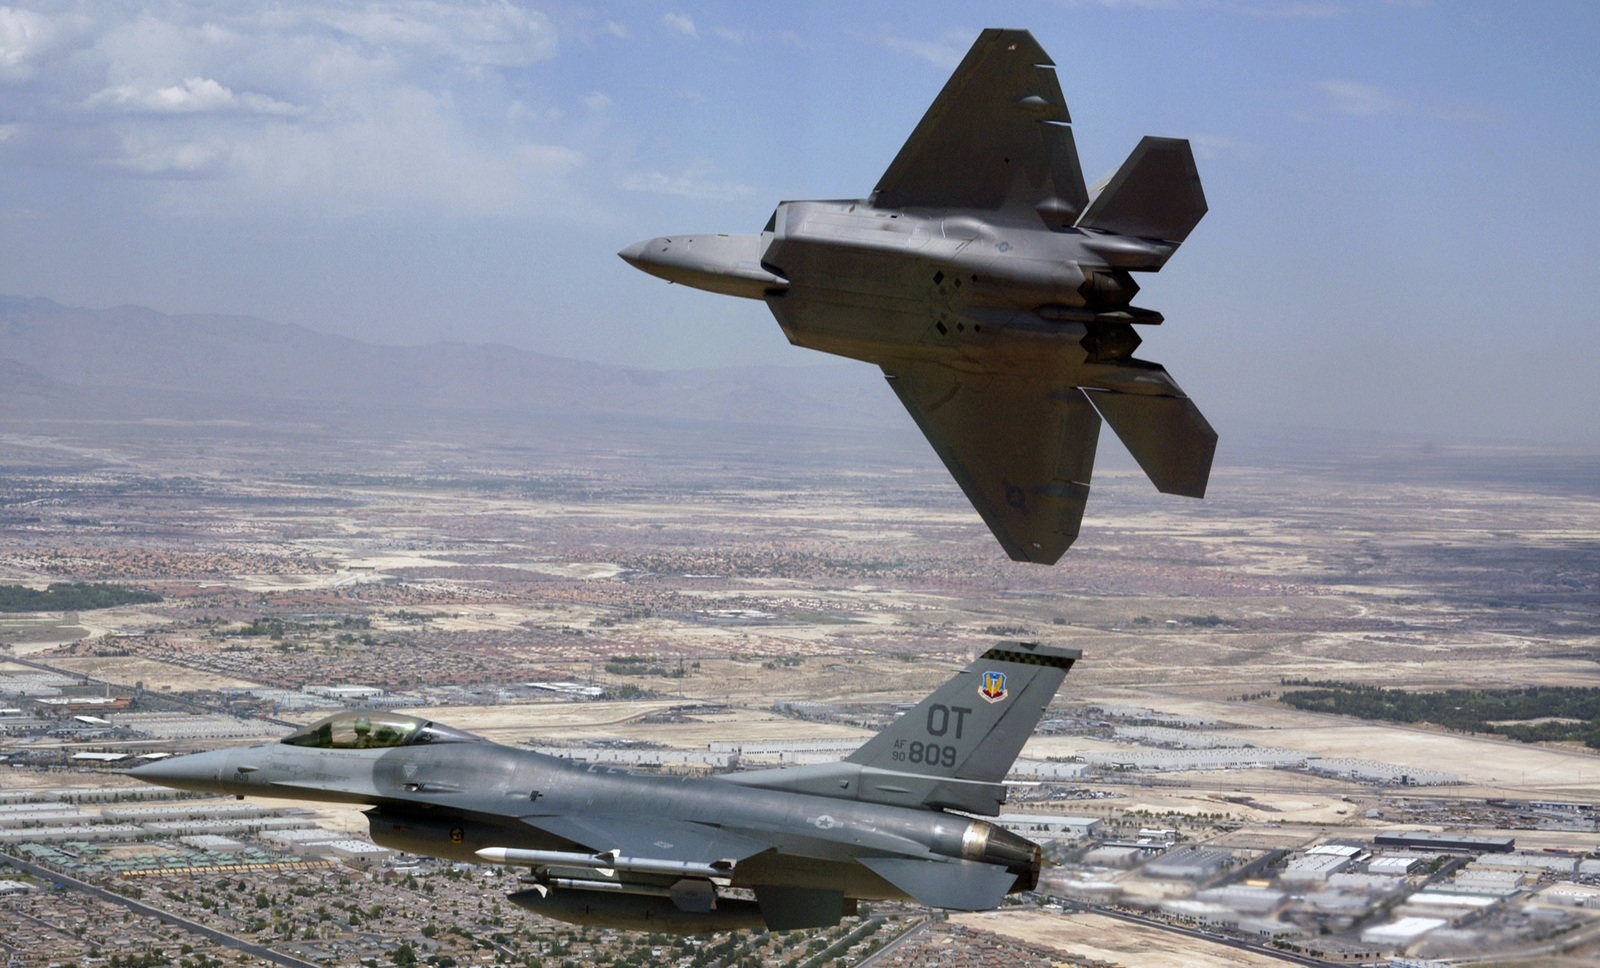 A US Air Force (USAF) F/A-22 Raptor, flown by USAF Major (MAJ) David Thole, 422nd Test and Evaluation Squadron (TES), Nellis Air Force Base (AFB), Nevada (NV), breaks away after completing a training mission with a USAF F-16 Fighting Falcon fighter, flown by MAJ Alex Grynkewich, 53rd Test and Evaluation Group (TEG), Nellis AFB, NV